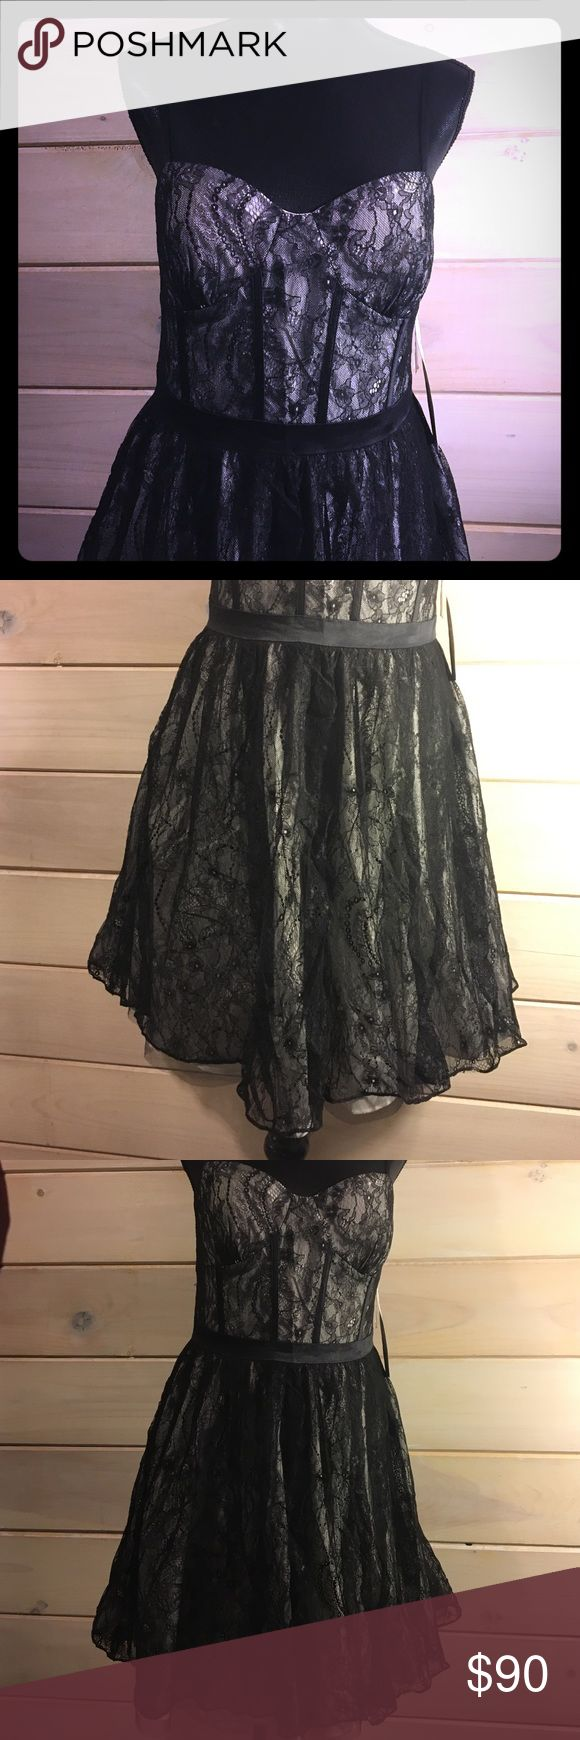 NWT Aidan Mattox Black Lace Cocktail Dress Sz 10 Brand NEW Aidan Mattox Lace Prom / Cocktail Dress👗  Absolutely Adorable!!! 👗Corset style top w/spaghetti straps 👗Satin details around the waist & bust 👗A-line 3 layer skirt 👗Mid length  👗Black lace over cream satin 👗Please feel free to ask questions...(26) Aidan Mattox Dresses Midi